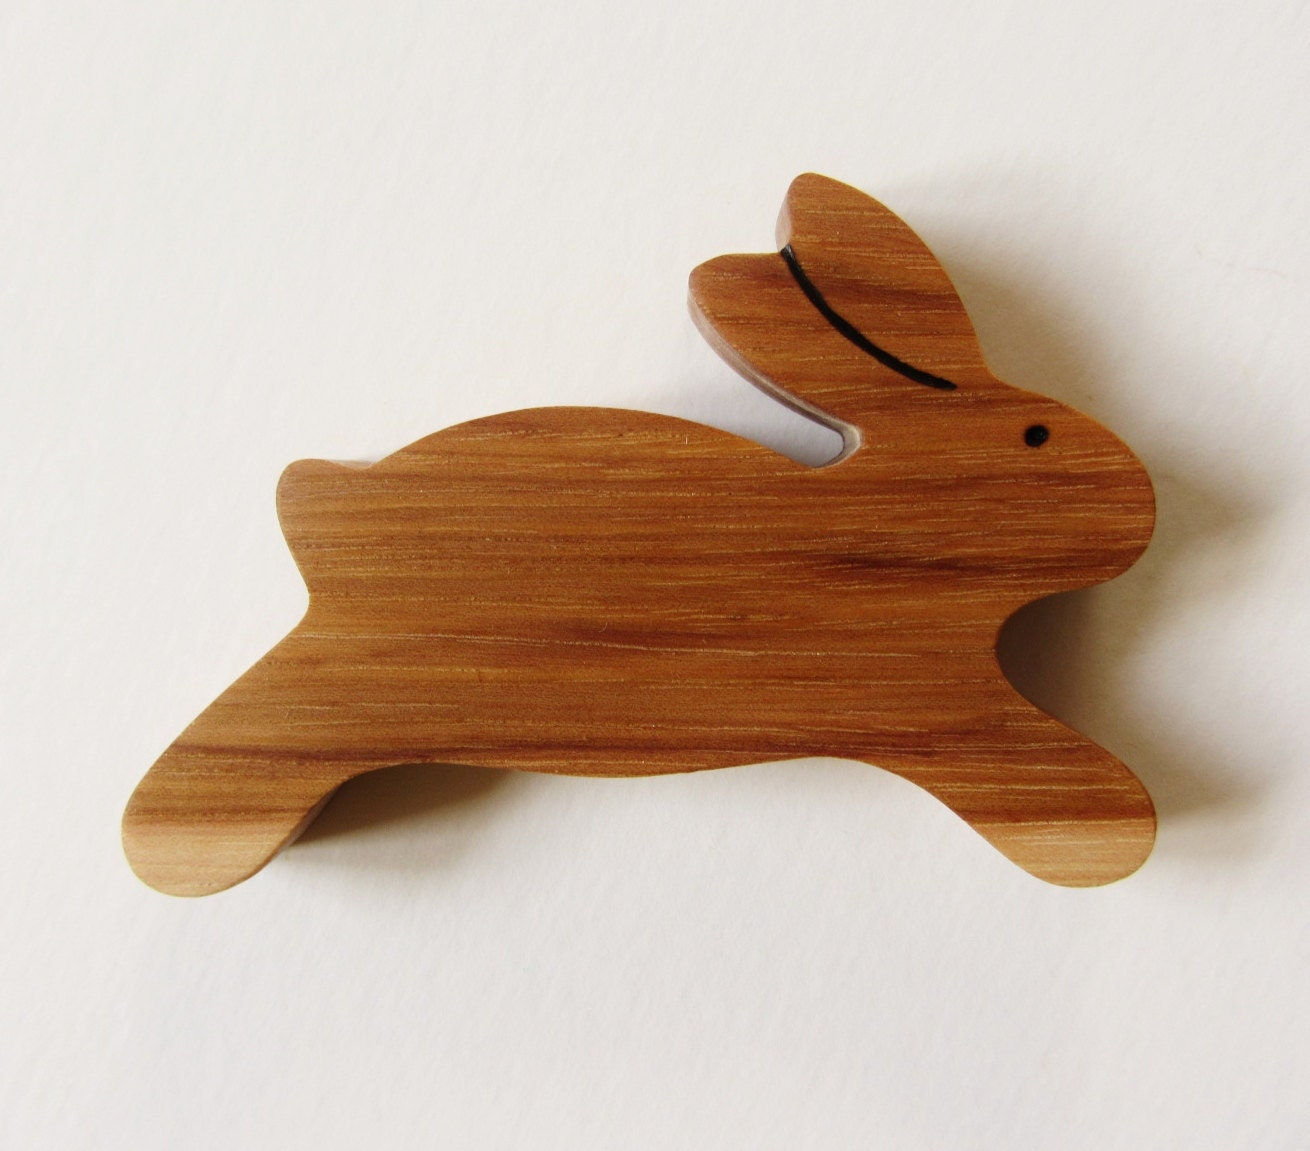 Toys Are Us Wooden Toys : Wooden bunny teether natural rabbit teething toy heirloom